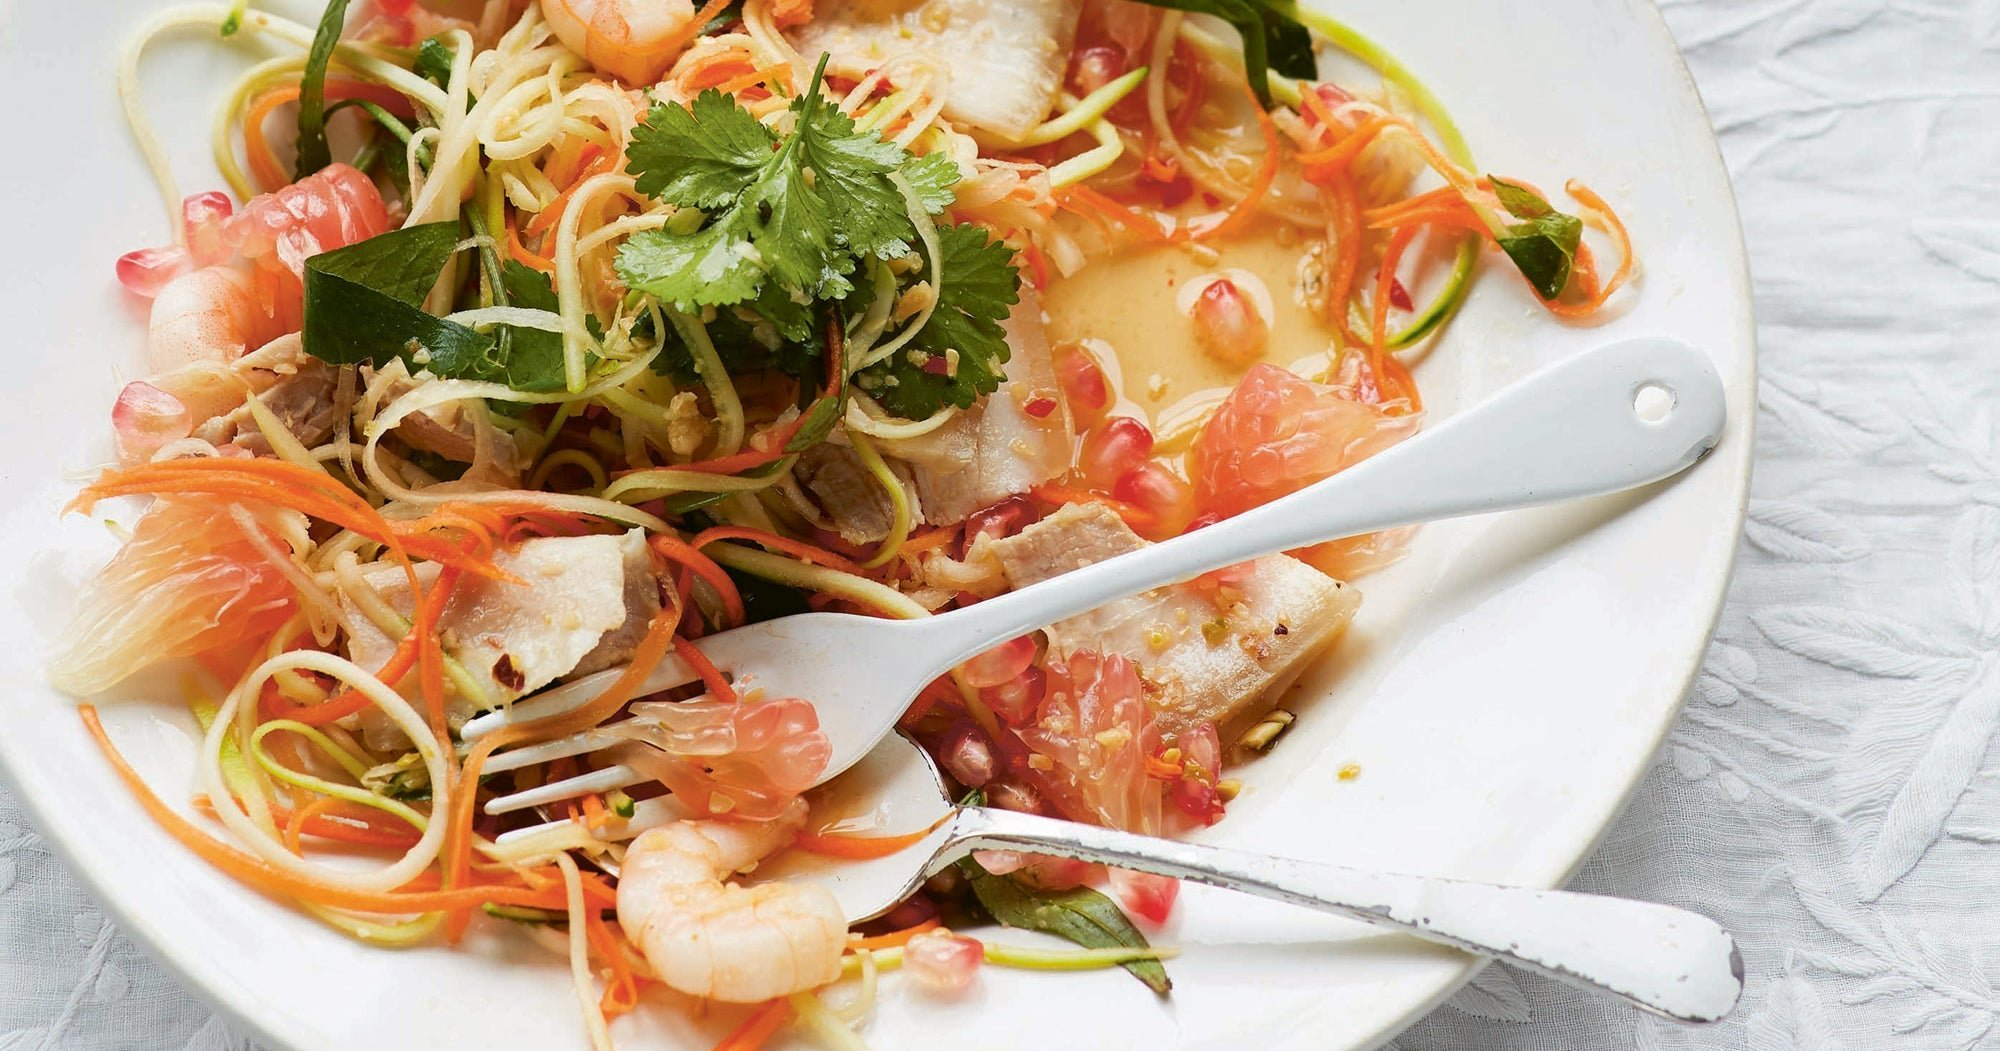 The Ultimate Guide to Making Amazing Salads